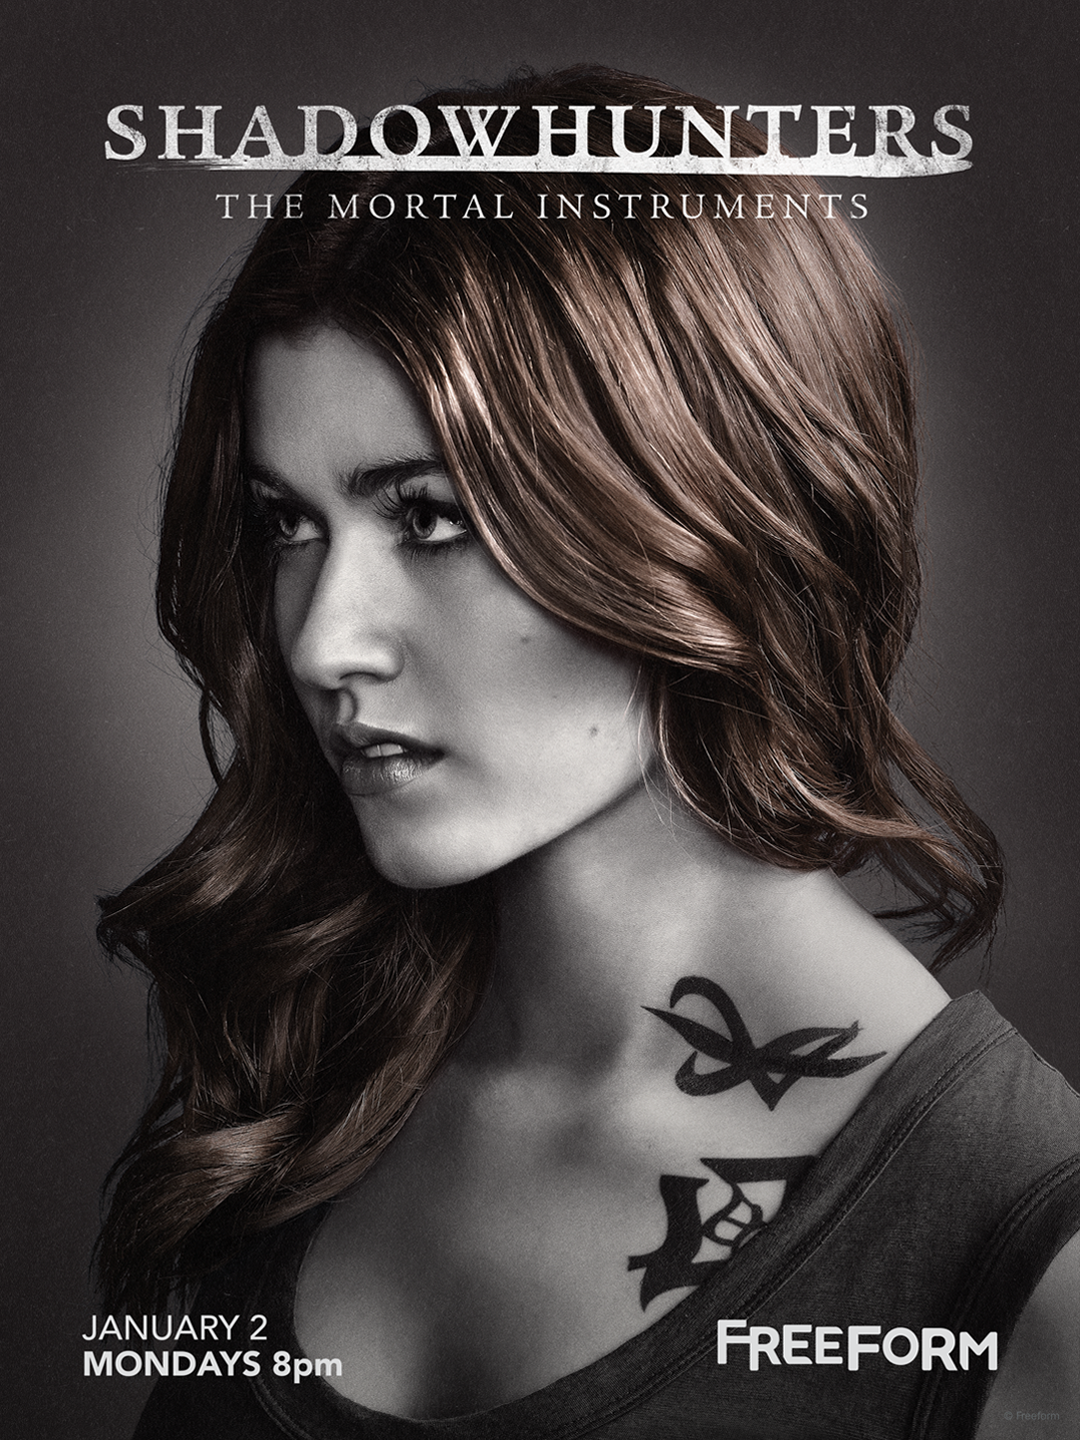 Shadowhunters - Unlock The Official Clary Poster For Season 2 By Tweeting Us With This Hashtag! - 1002